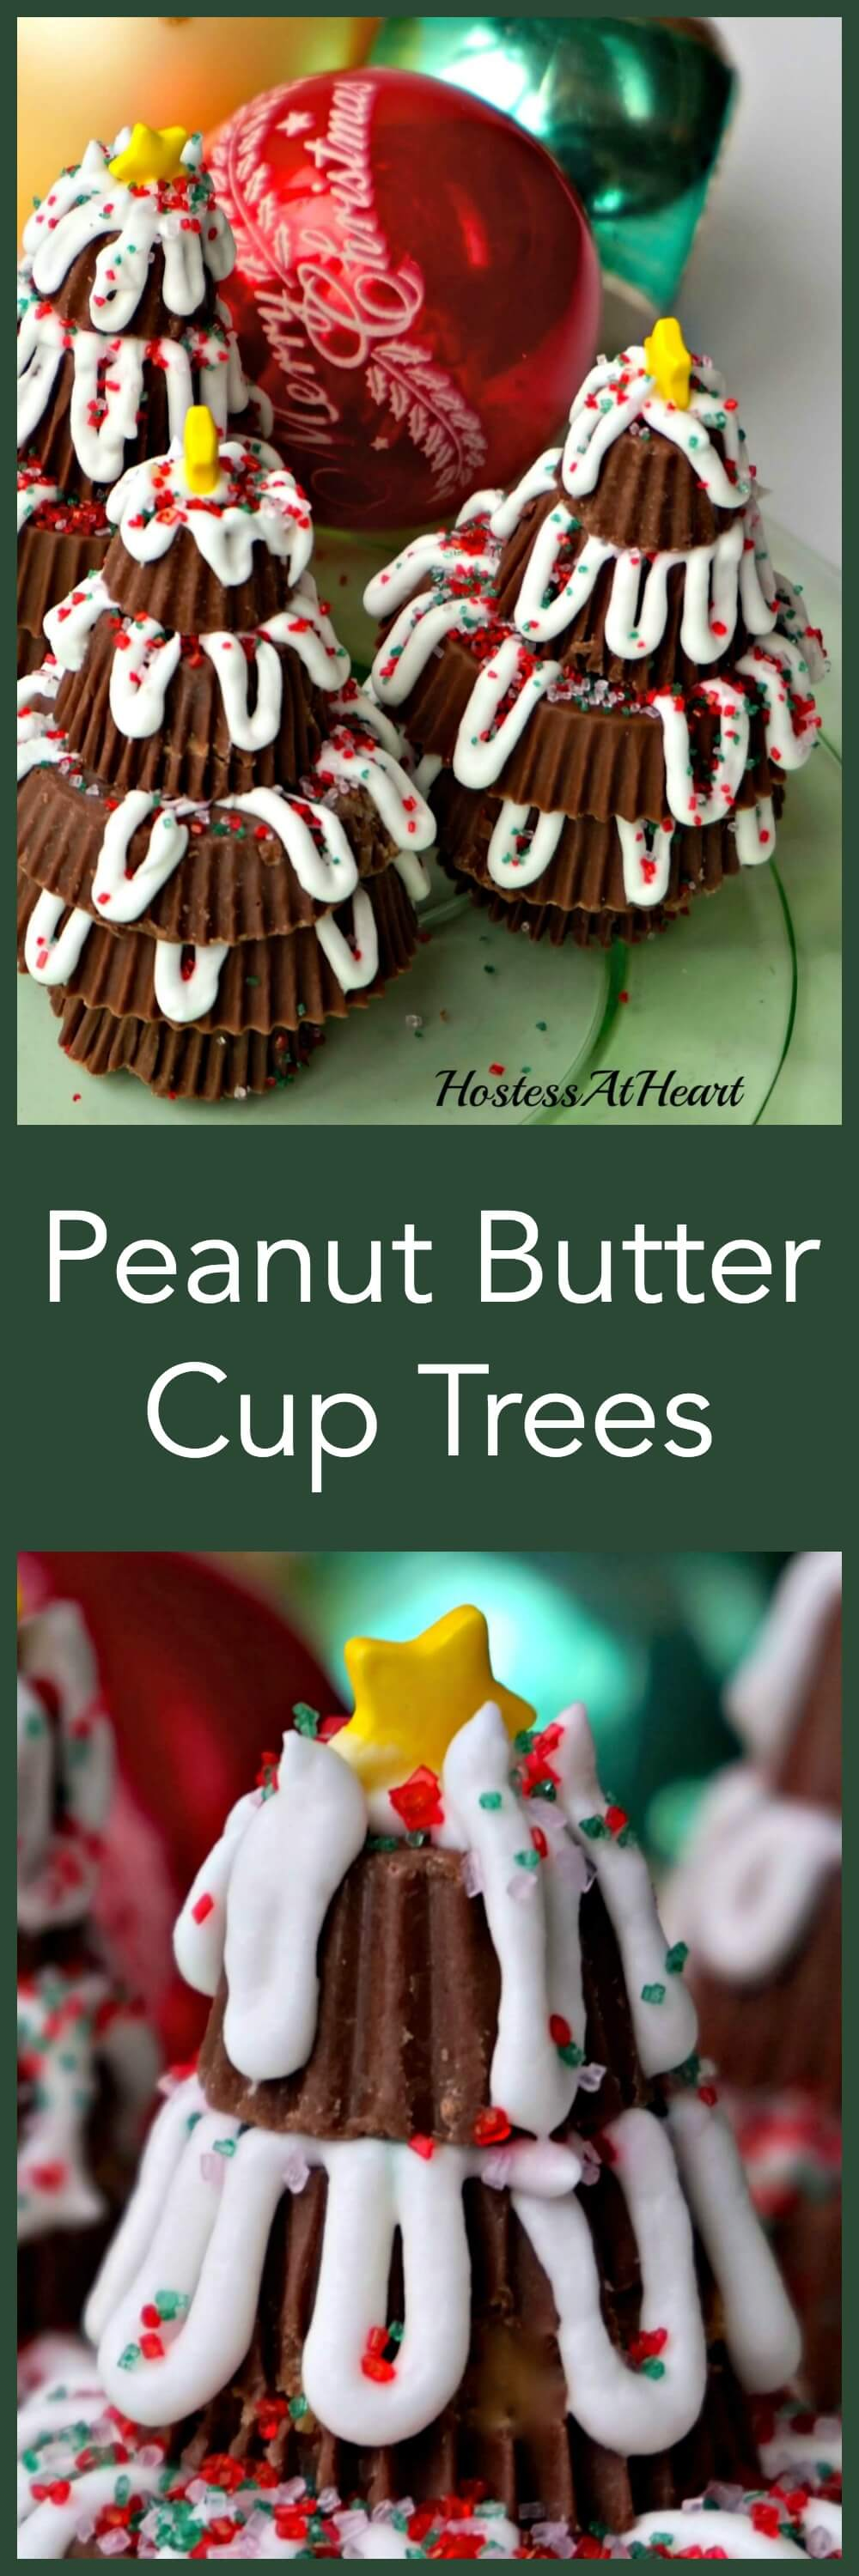 Peanut Butter Cup Trees make an adorable place setter on your table as well as a great after dinner treat. The whole family will have fun making their own.   HostessAtHeart.com